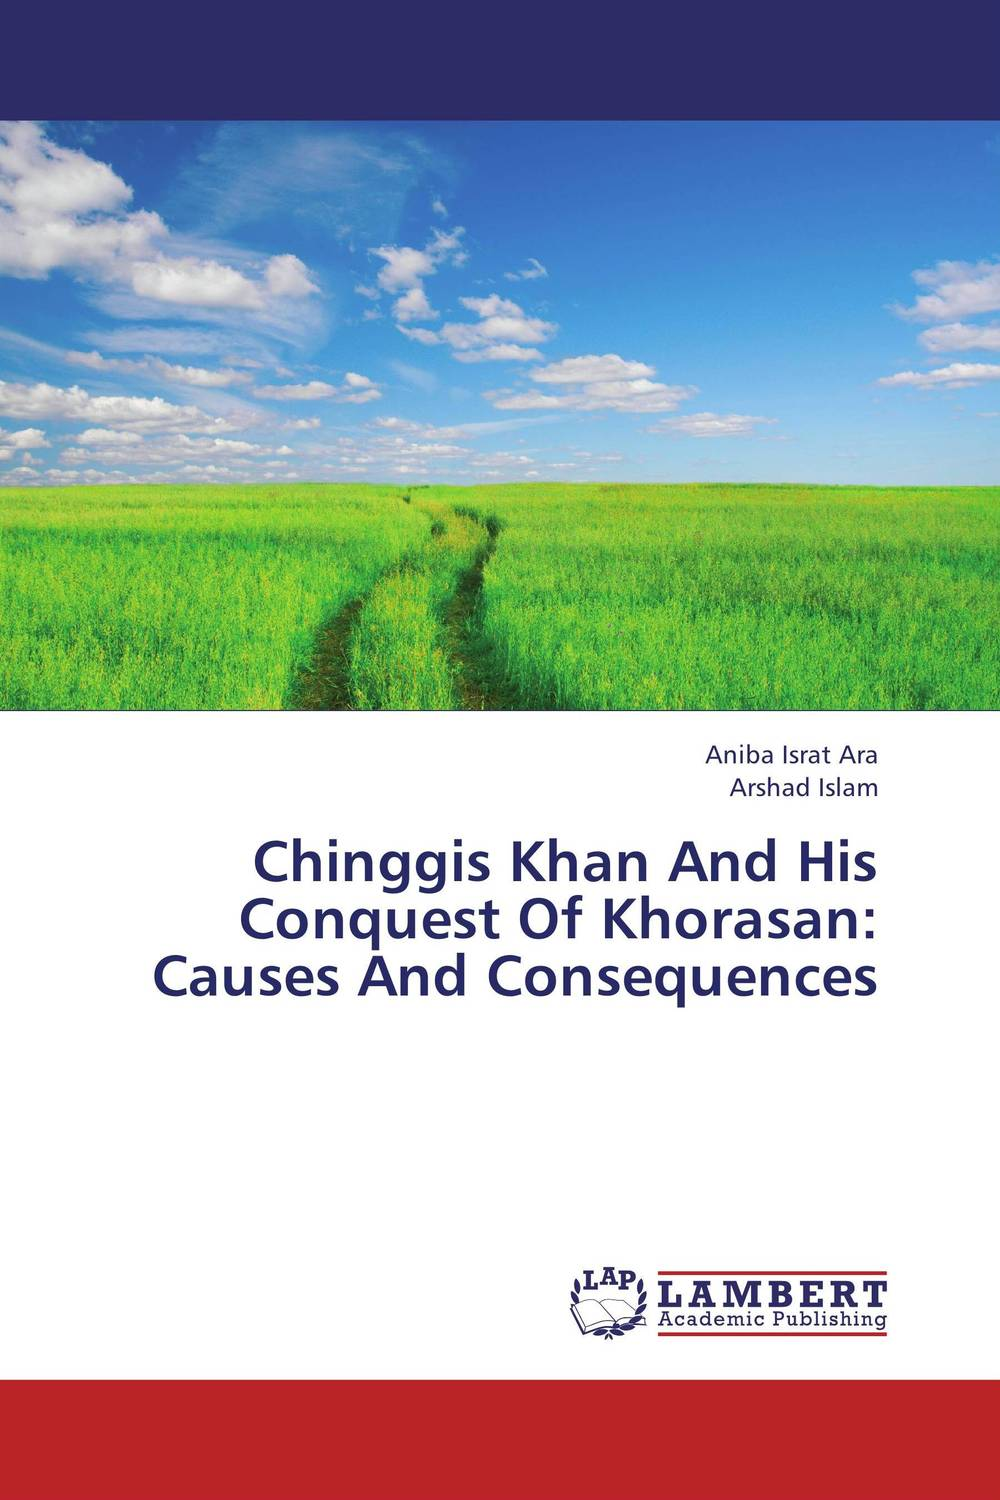 Chinggis Khan And His Conquest Of Khorasan: Causes And Consequences